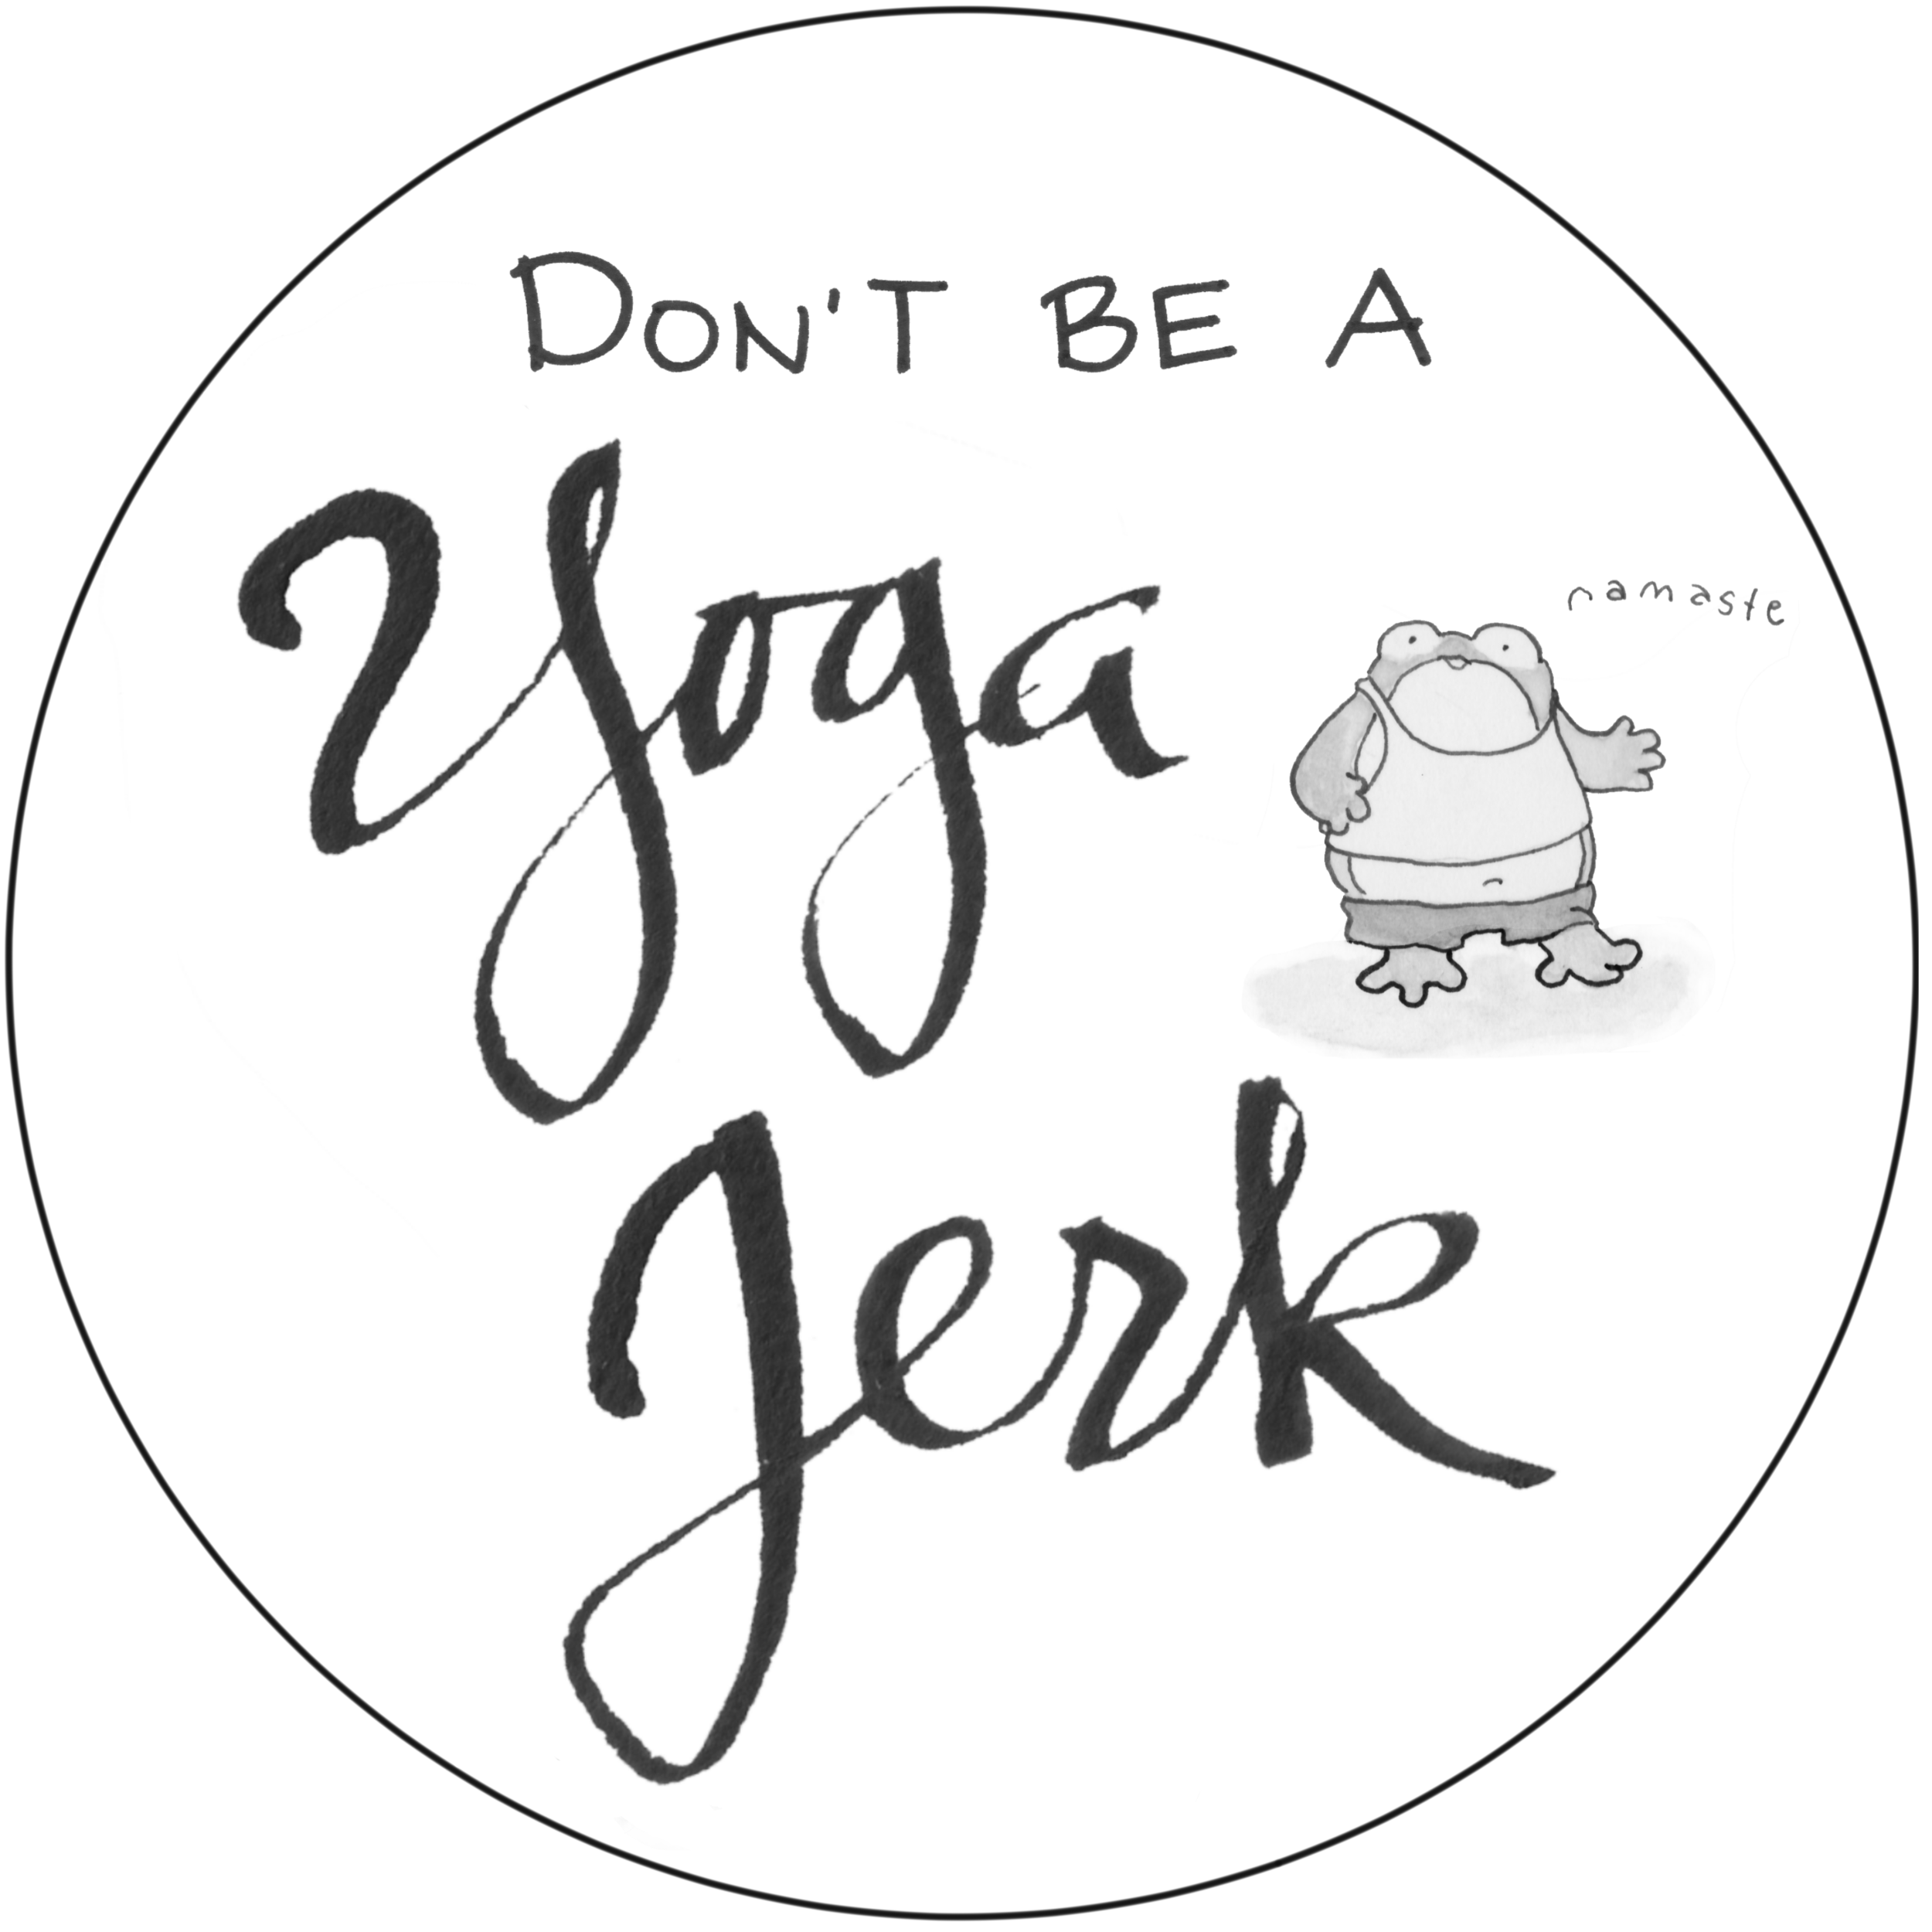 New Yoga Jerk Button 1.png